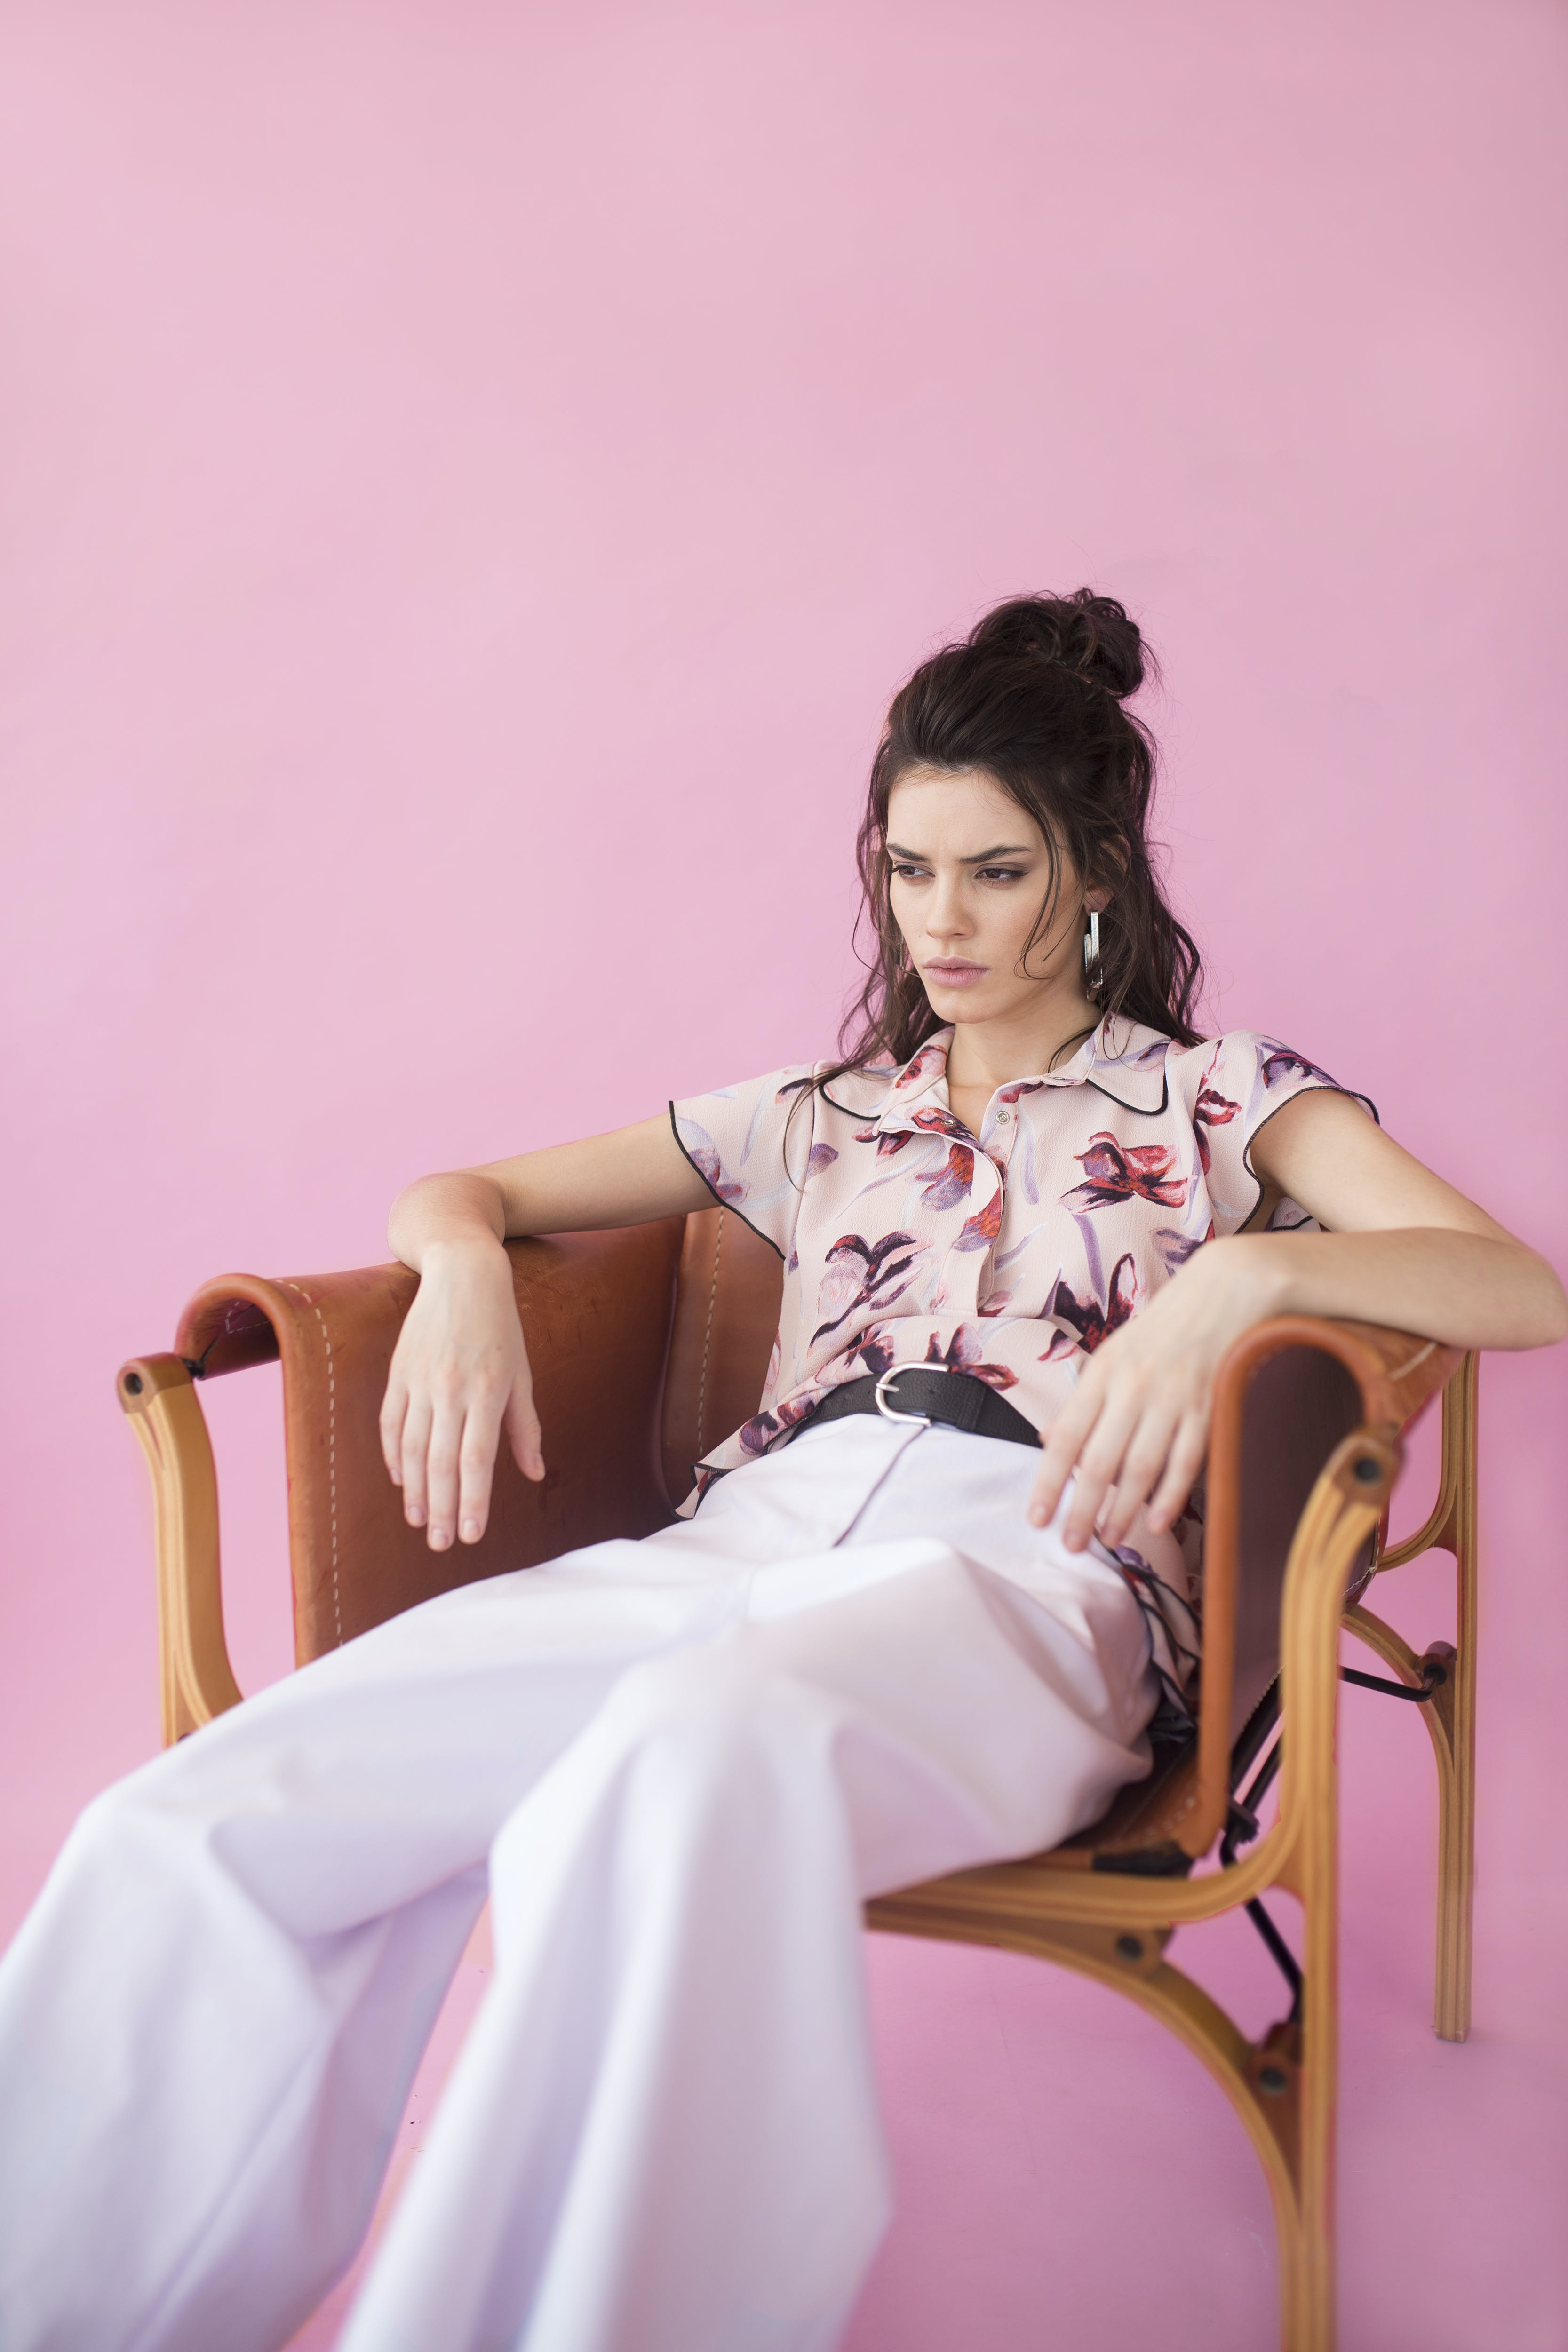 Photography of a Woman Sitting on Chair